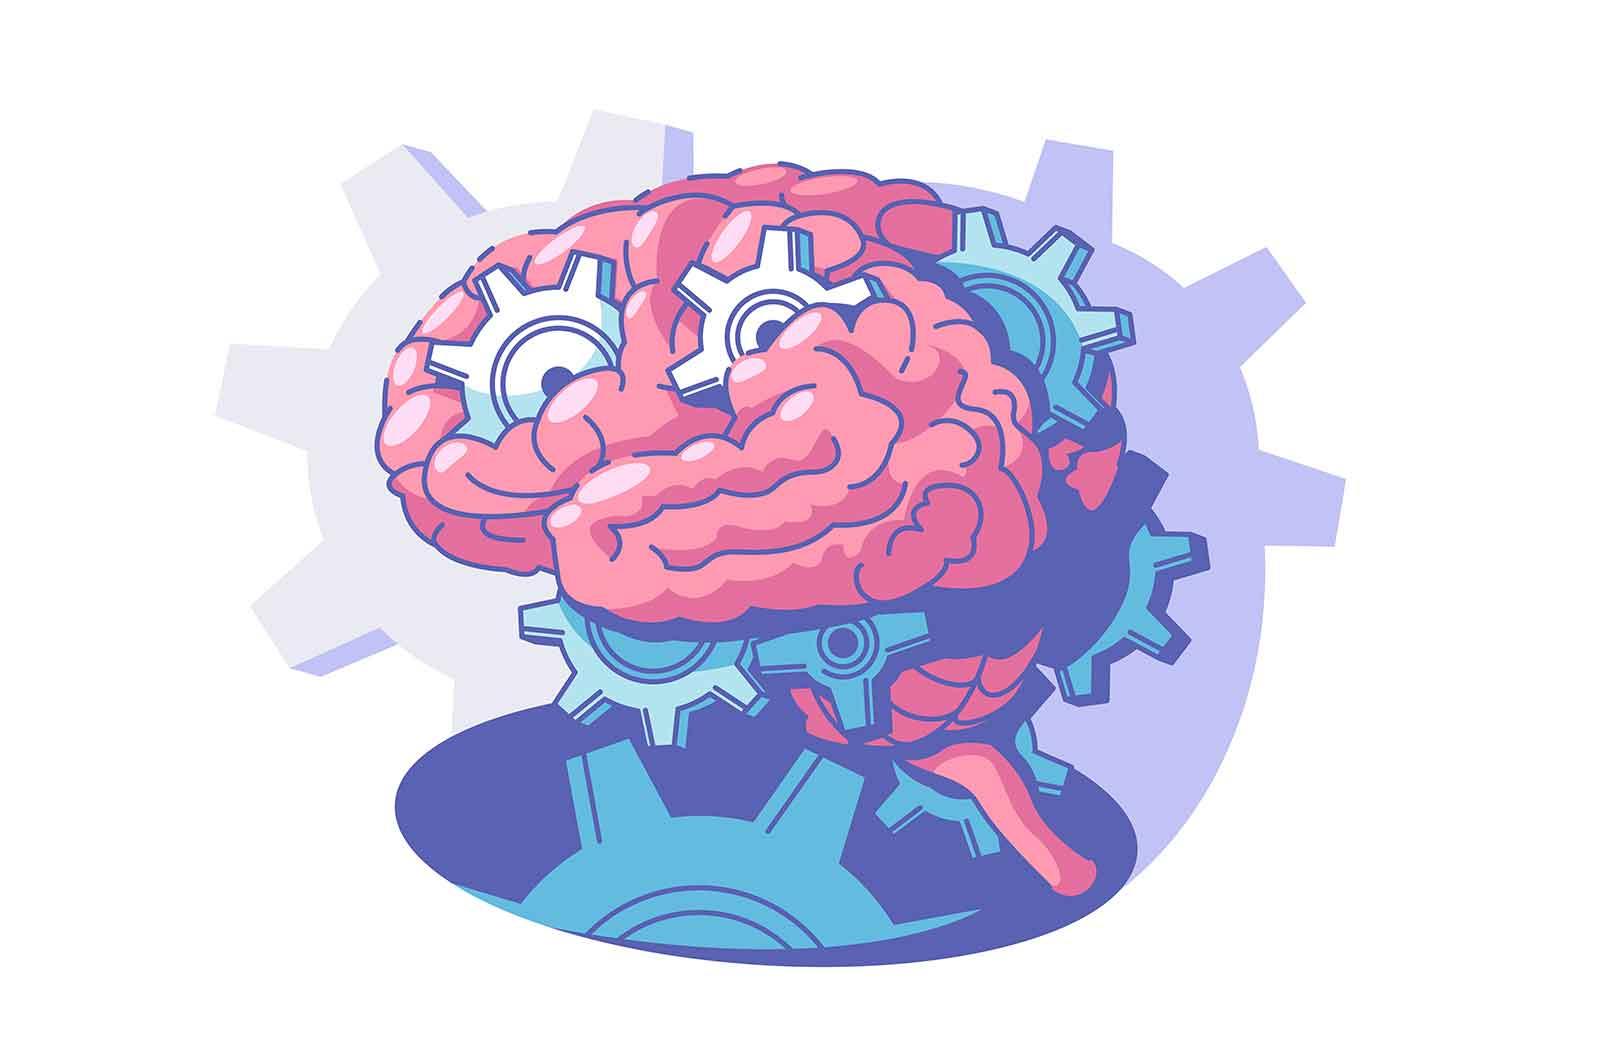 Process of brain activity vector illustration. Explore human mind flat style. Inside persons head. Thinking process and brainstorm concept. Isolated on white background